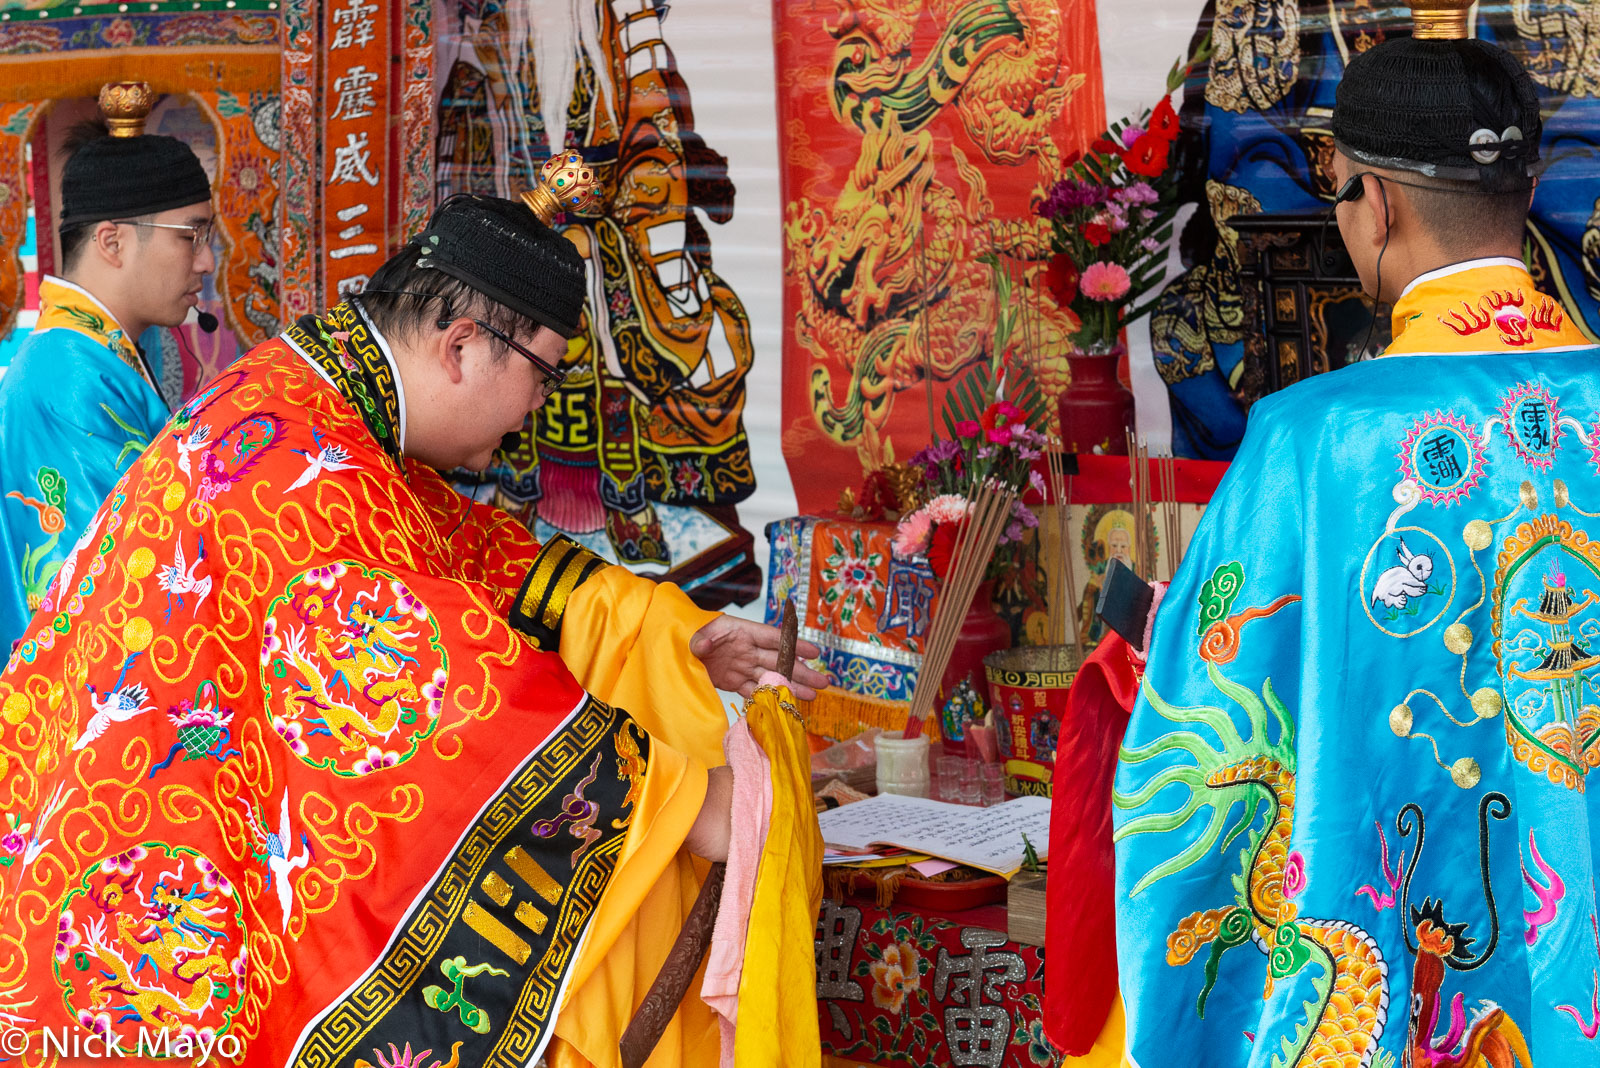 Priests performing a religious ritual at a temple festival in Linkou.